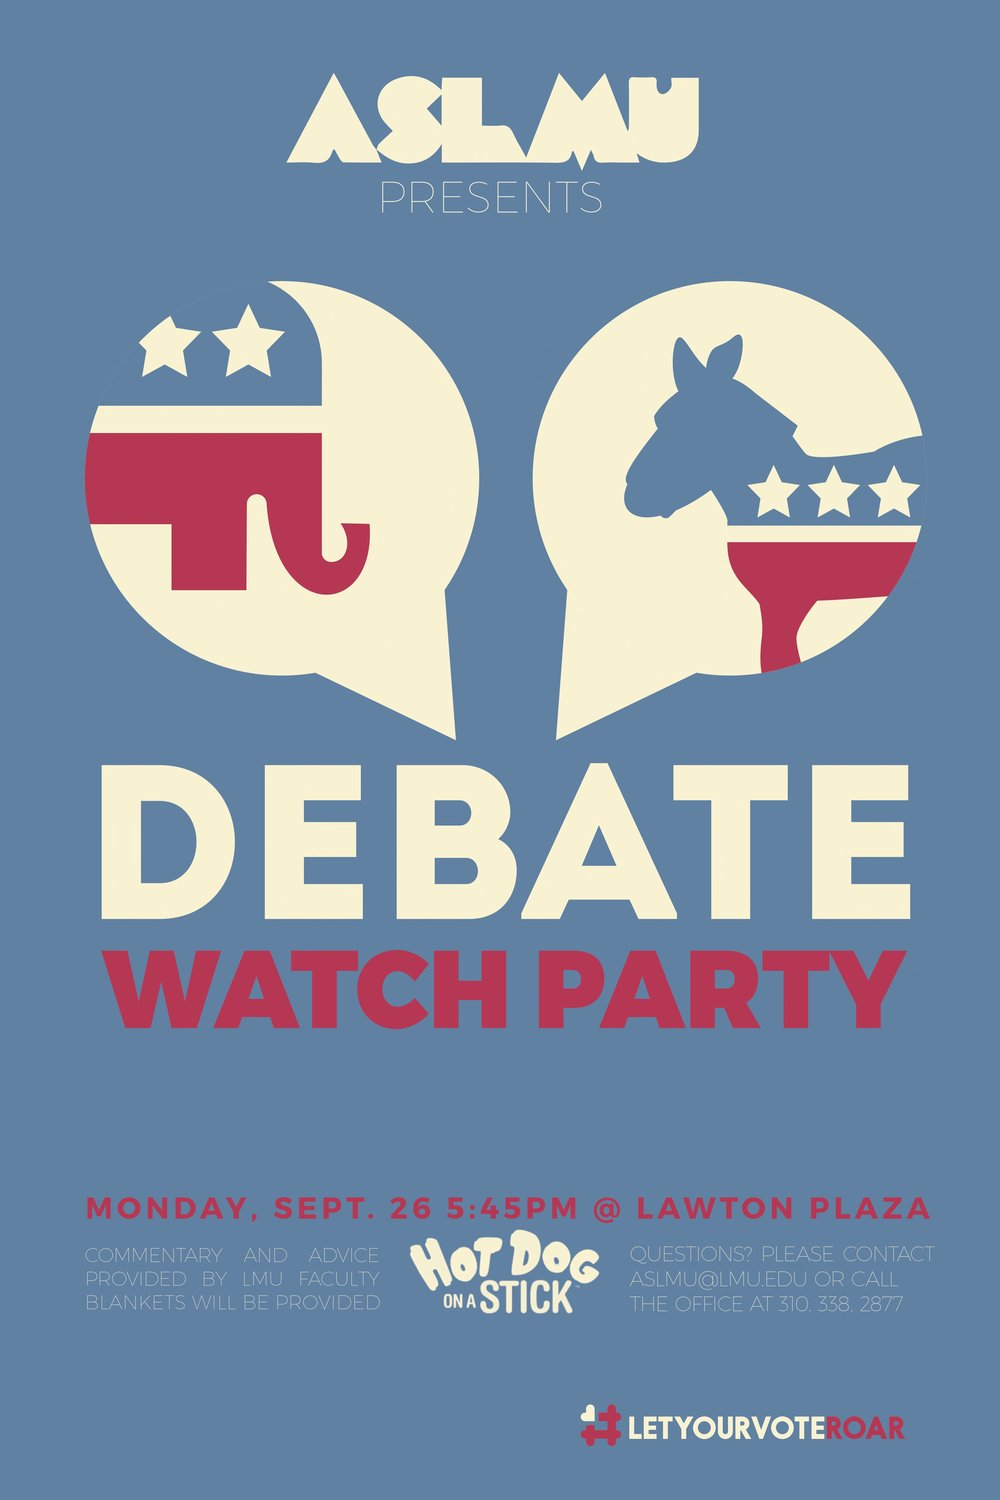 Join ASLMU on Monday, September 26 at Lawton Plaza as we watch the first presidential debate! There will be FREE Hot Dog on A Stick!! Blankets will also be provided. Afterwards, LMU faculty will give their input on the election. We'll begin broadcasting the debate at 5:45 pm. Remember to let your vote R.O.A.R. (Register, Observe, Act, Revolutionize)